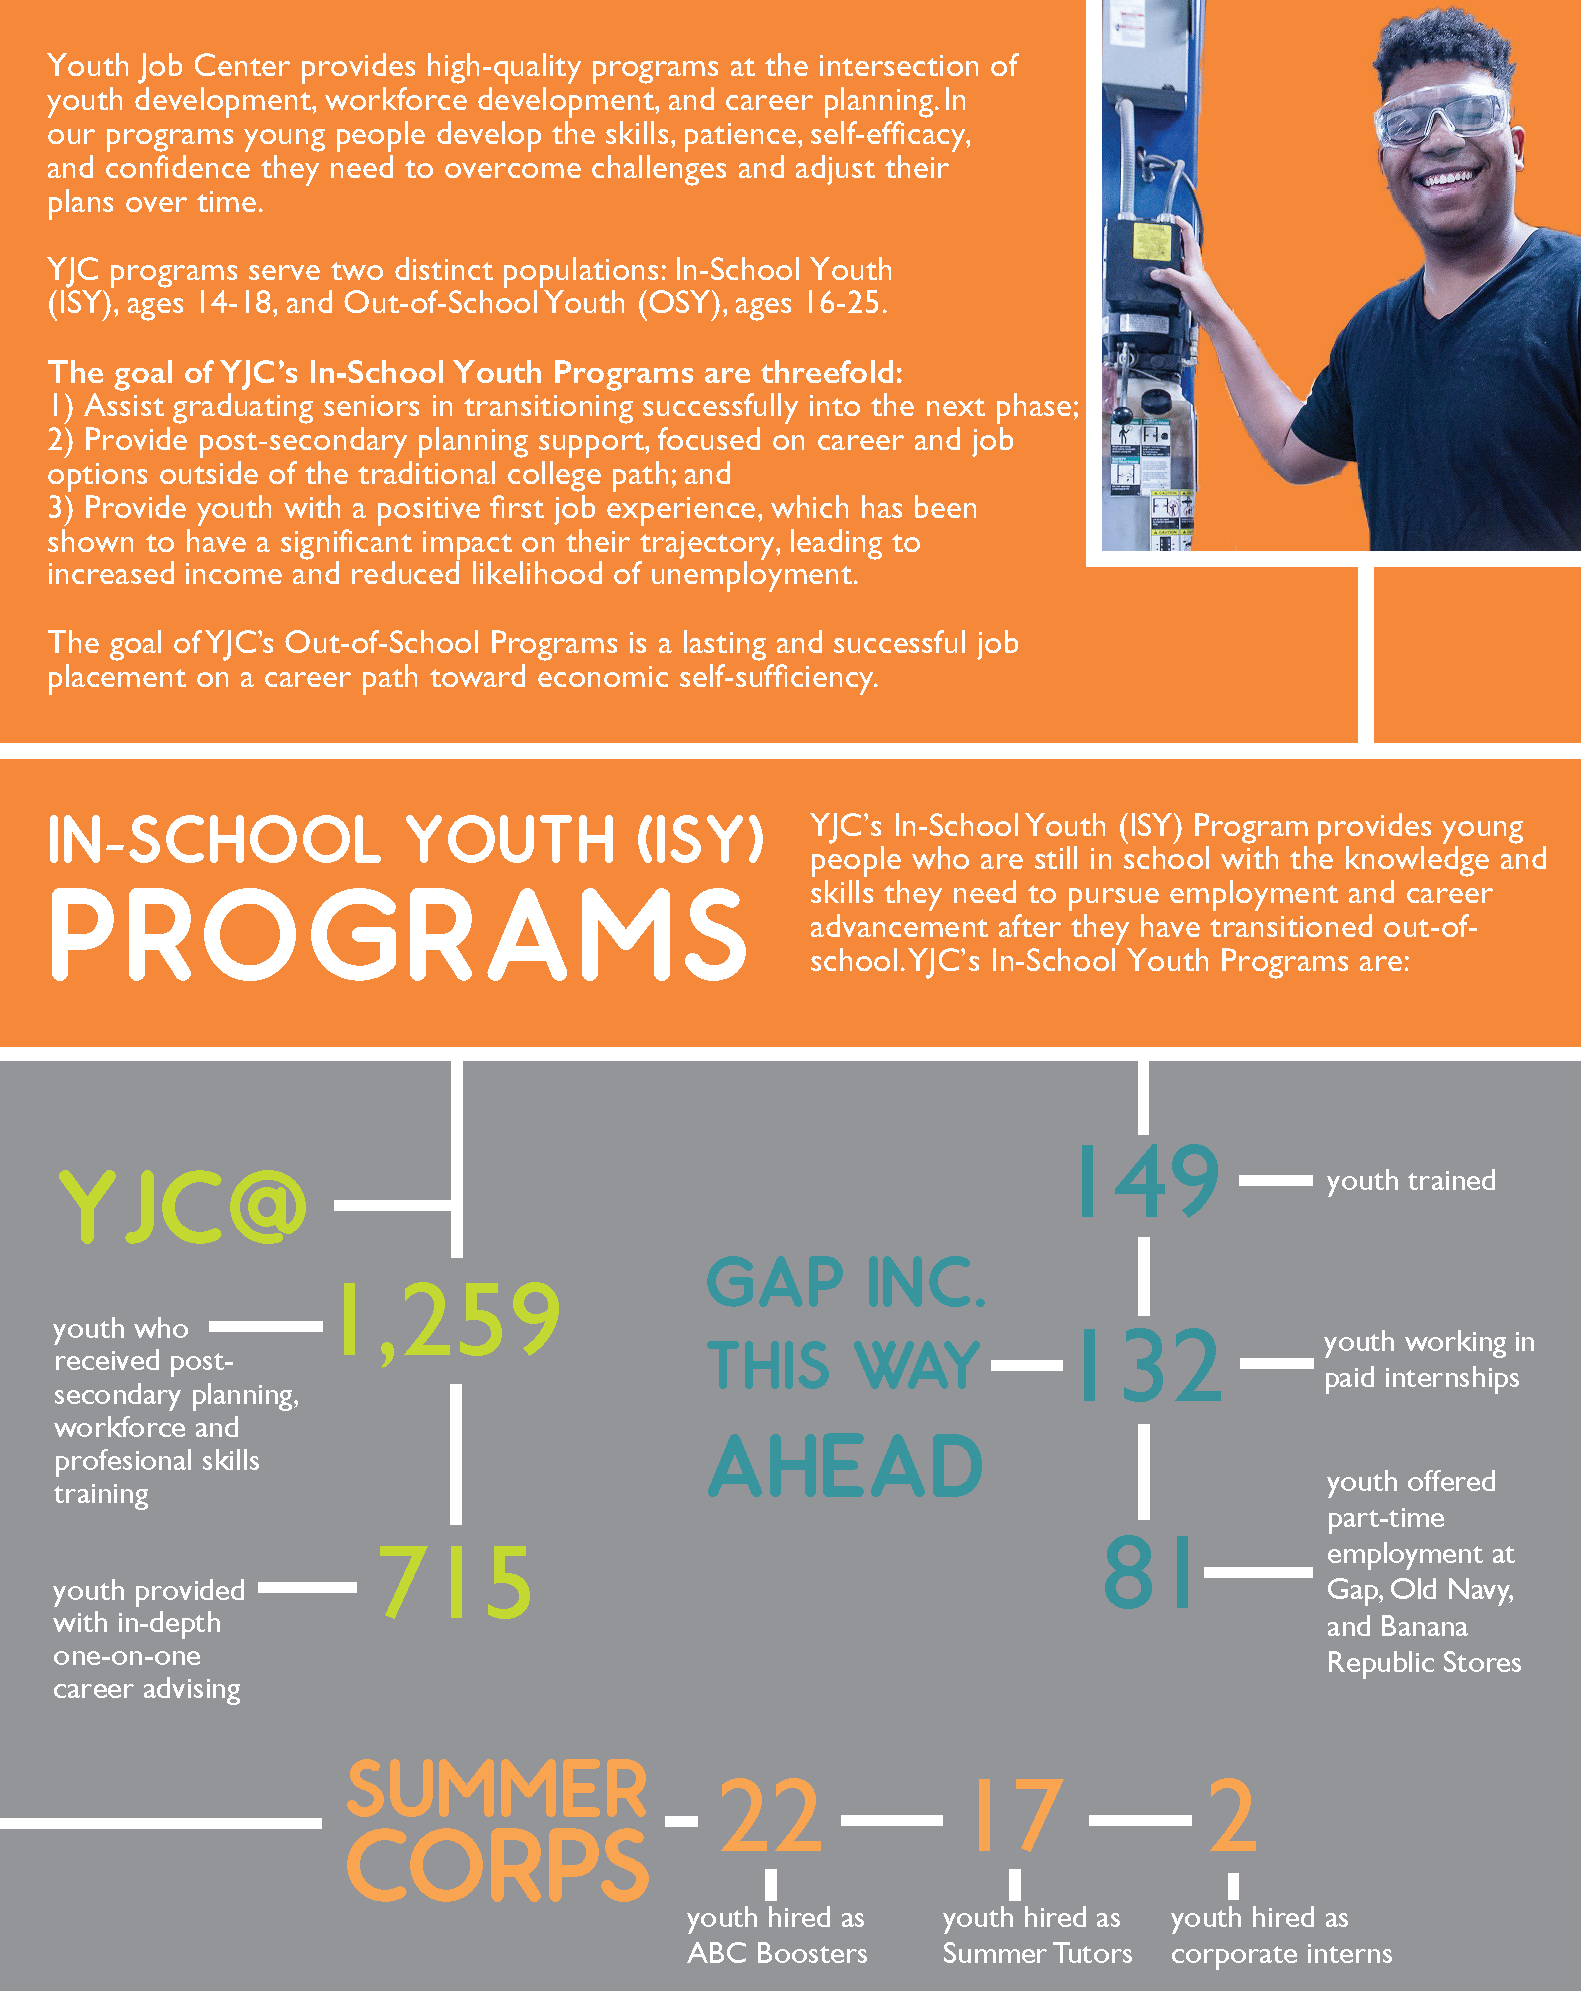 Youth Job Center Annual Report 2017-2018 page 2 and page 3_Page_2.png